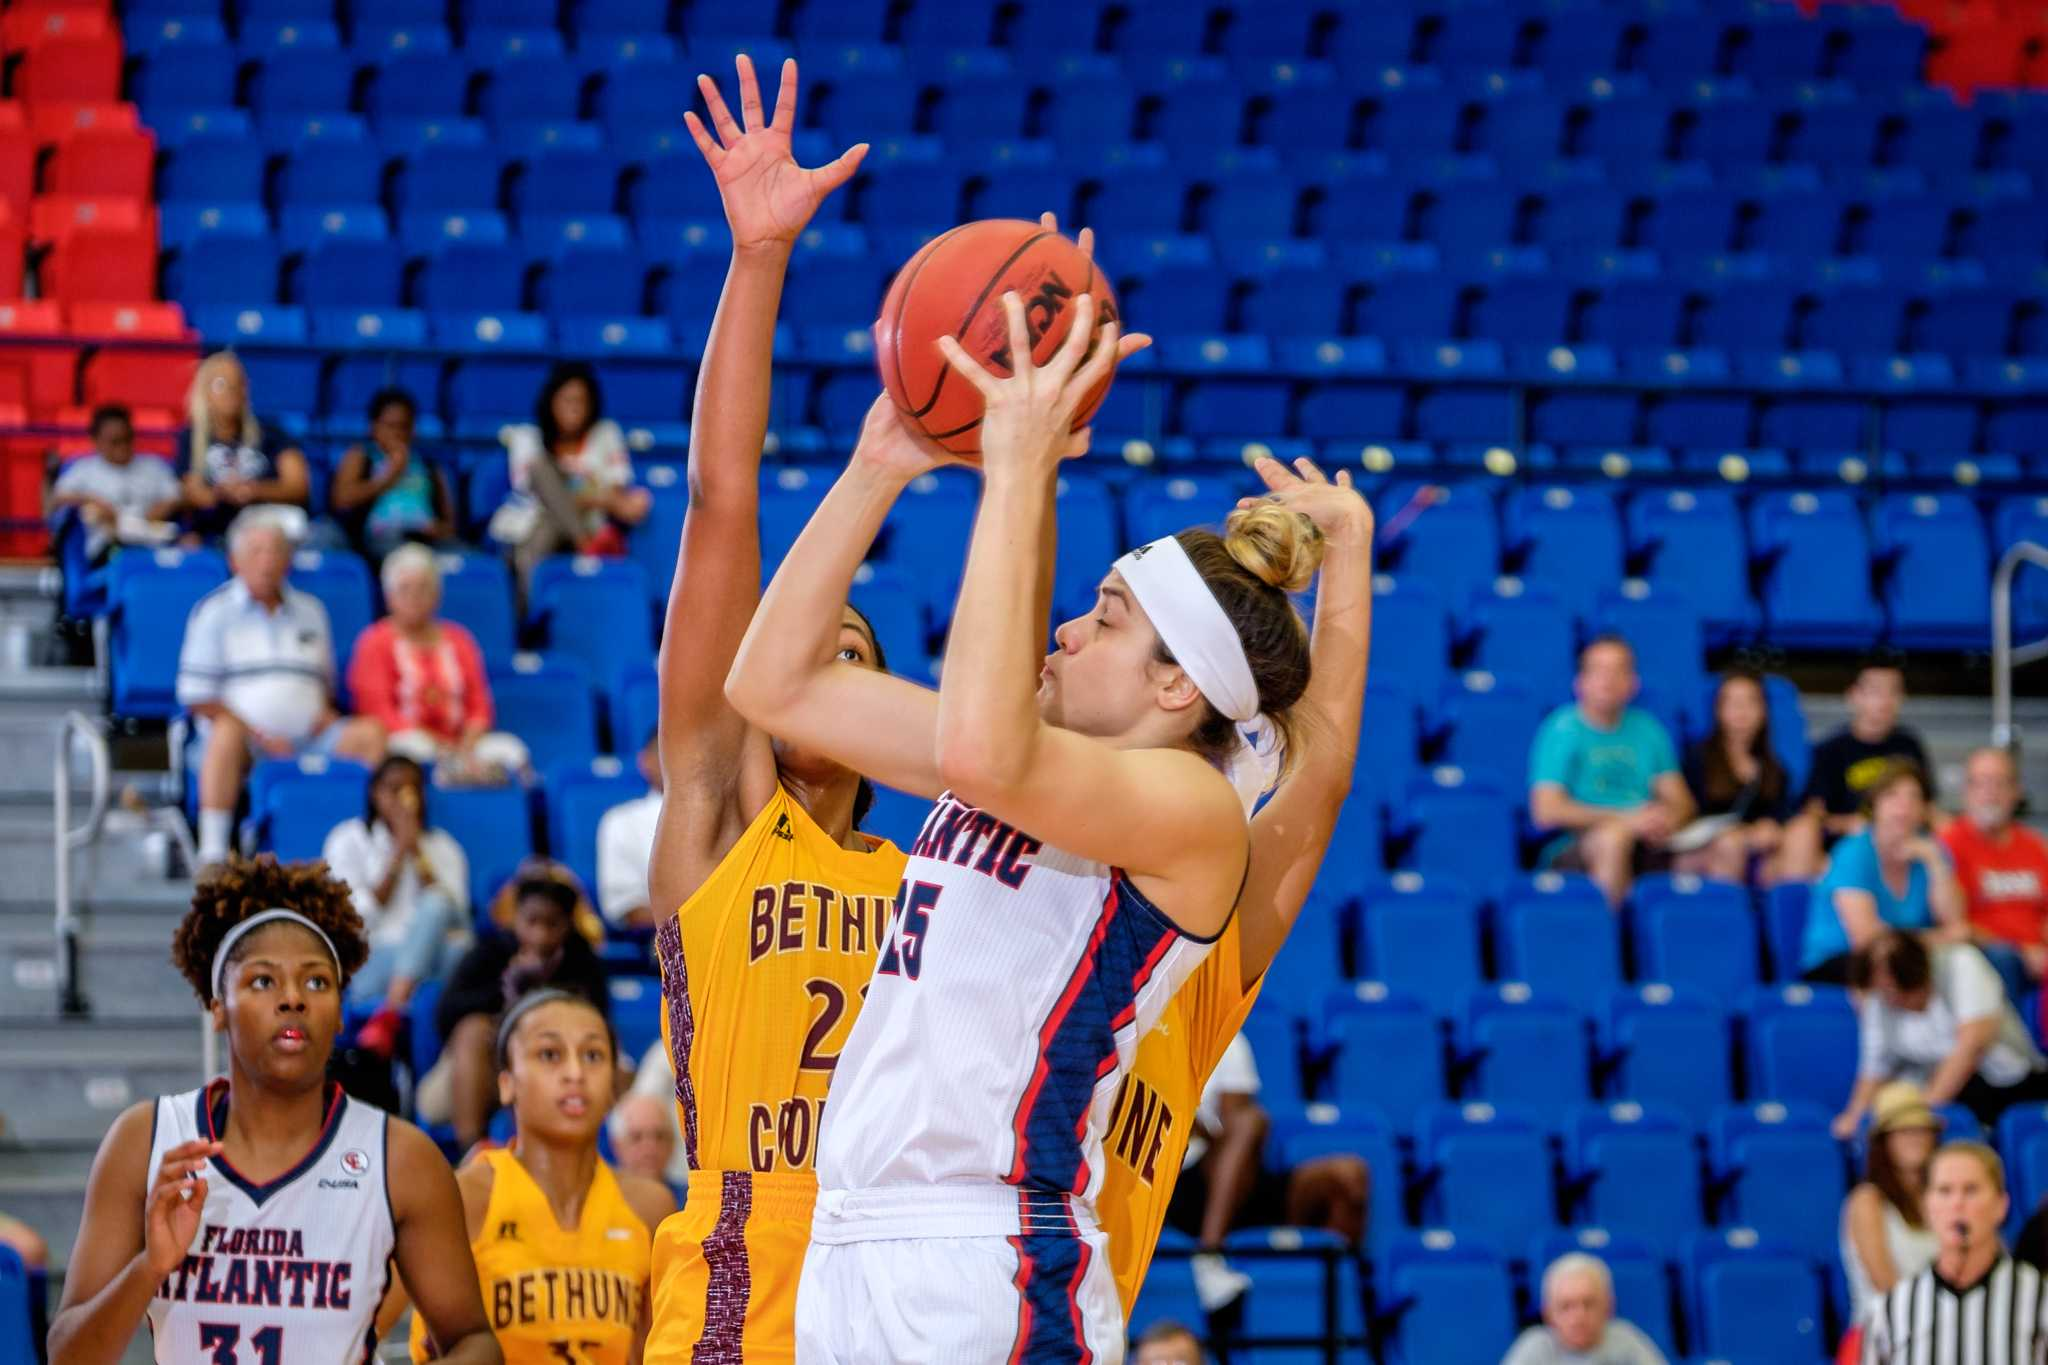 Junior Sasha Cedeno scored a team-high 19 points in the Owls loss to the University of Texas at San Antonio on Wednesday. Photo by Mohammed F. Emran.